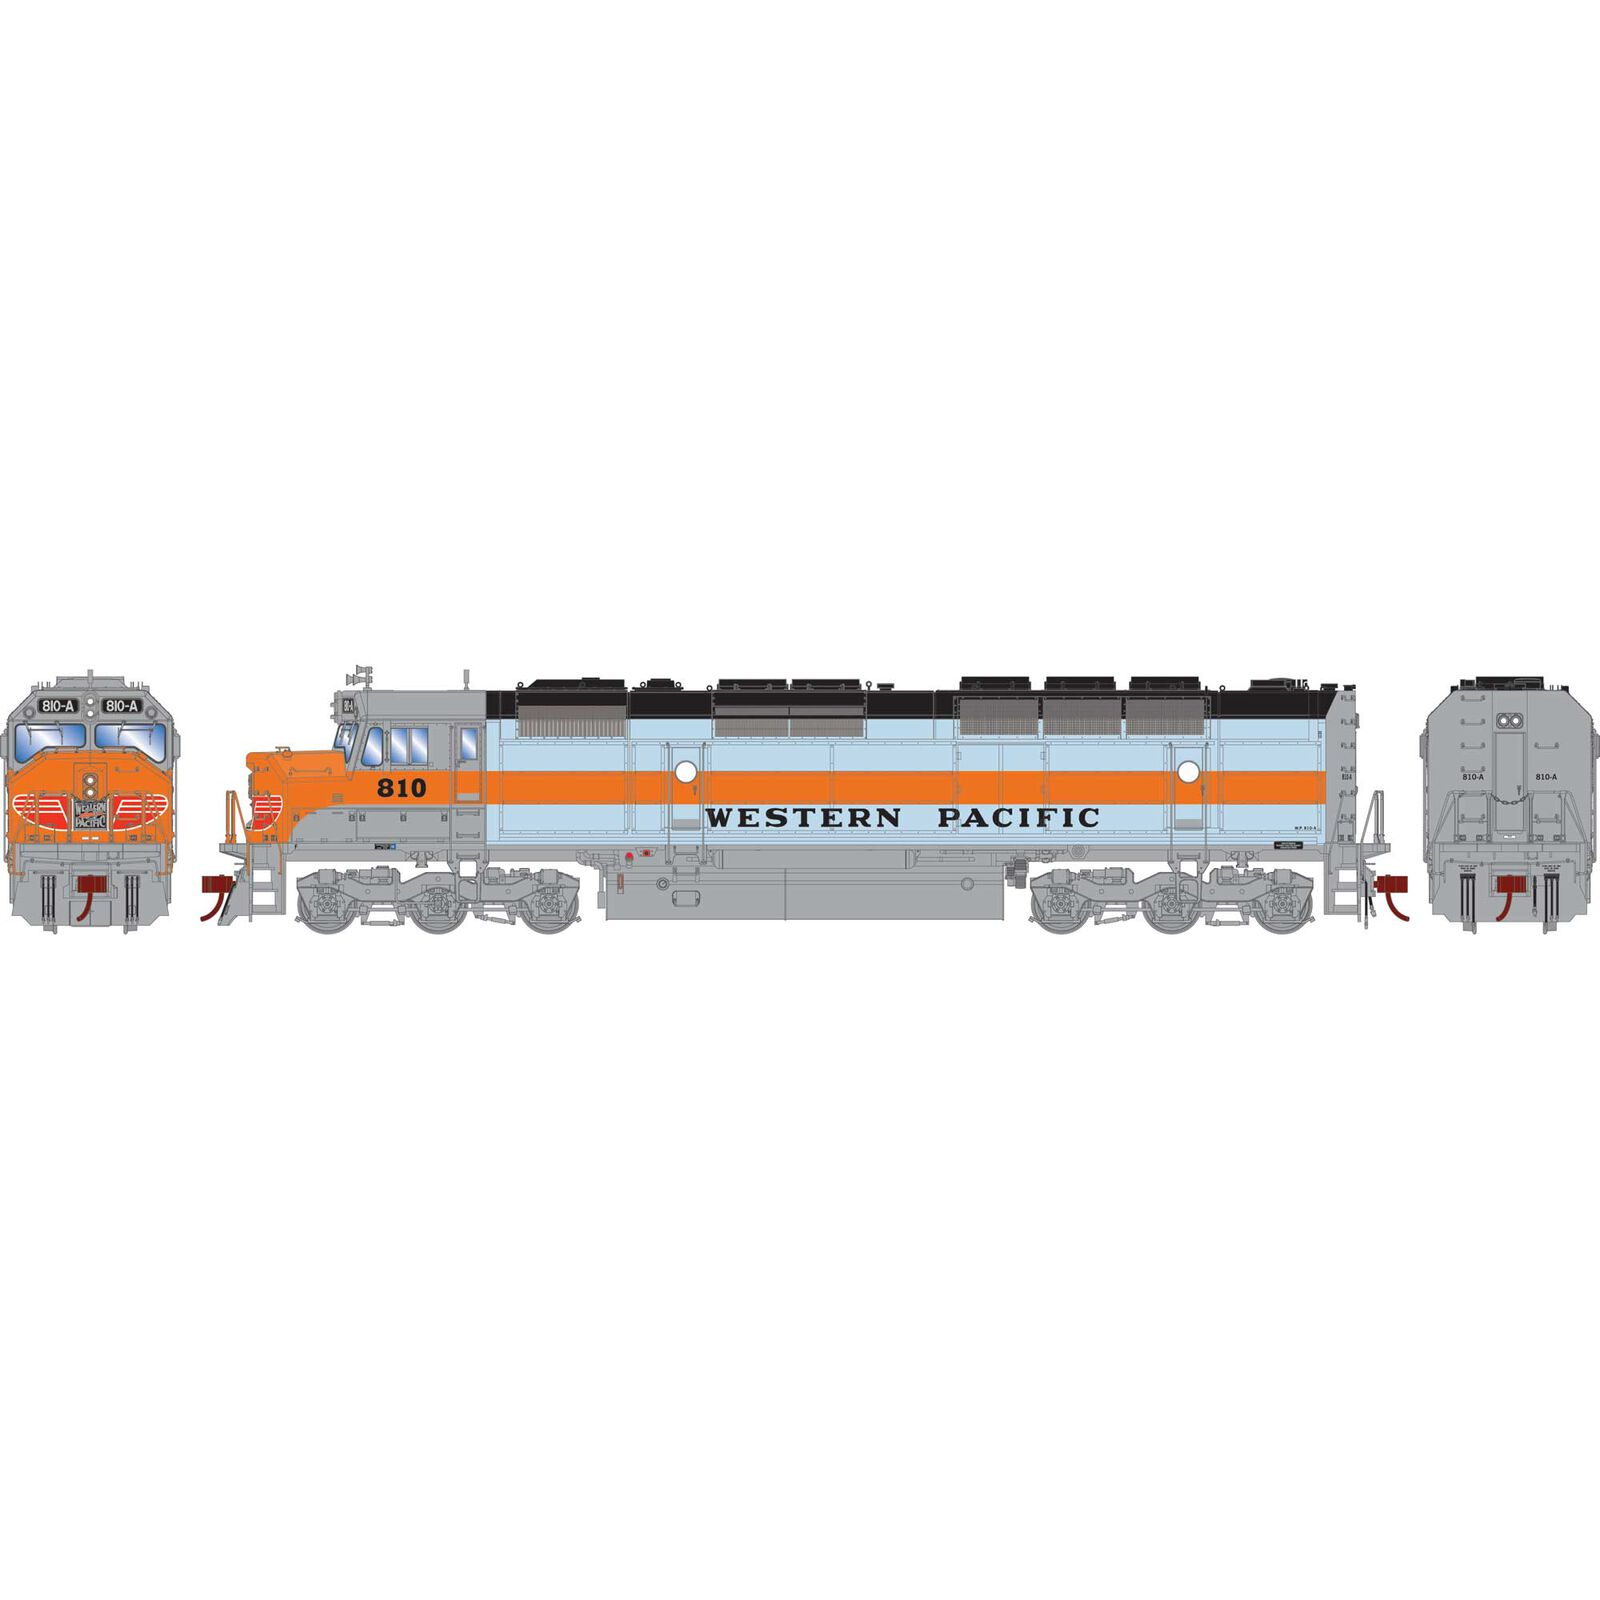 HO FP45 with DCC & Sound, WP #810